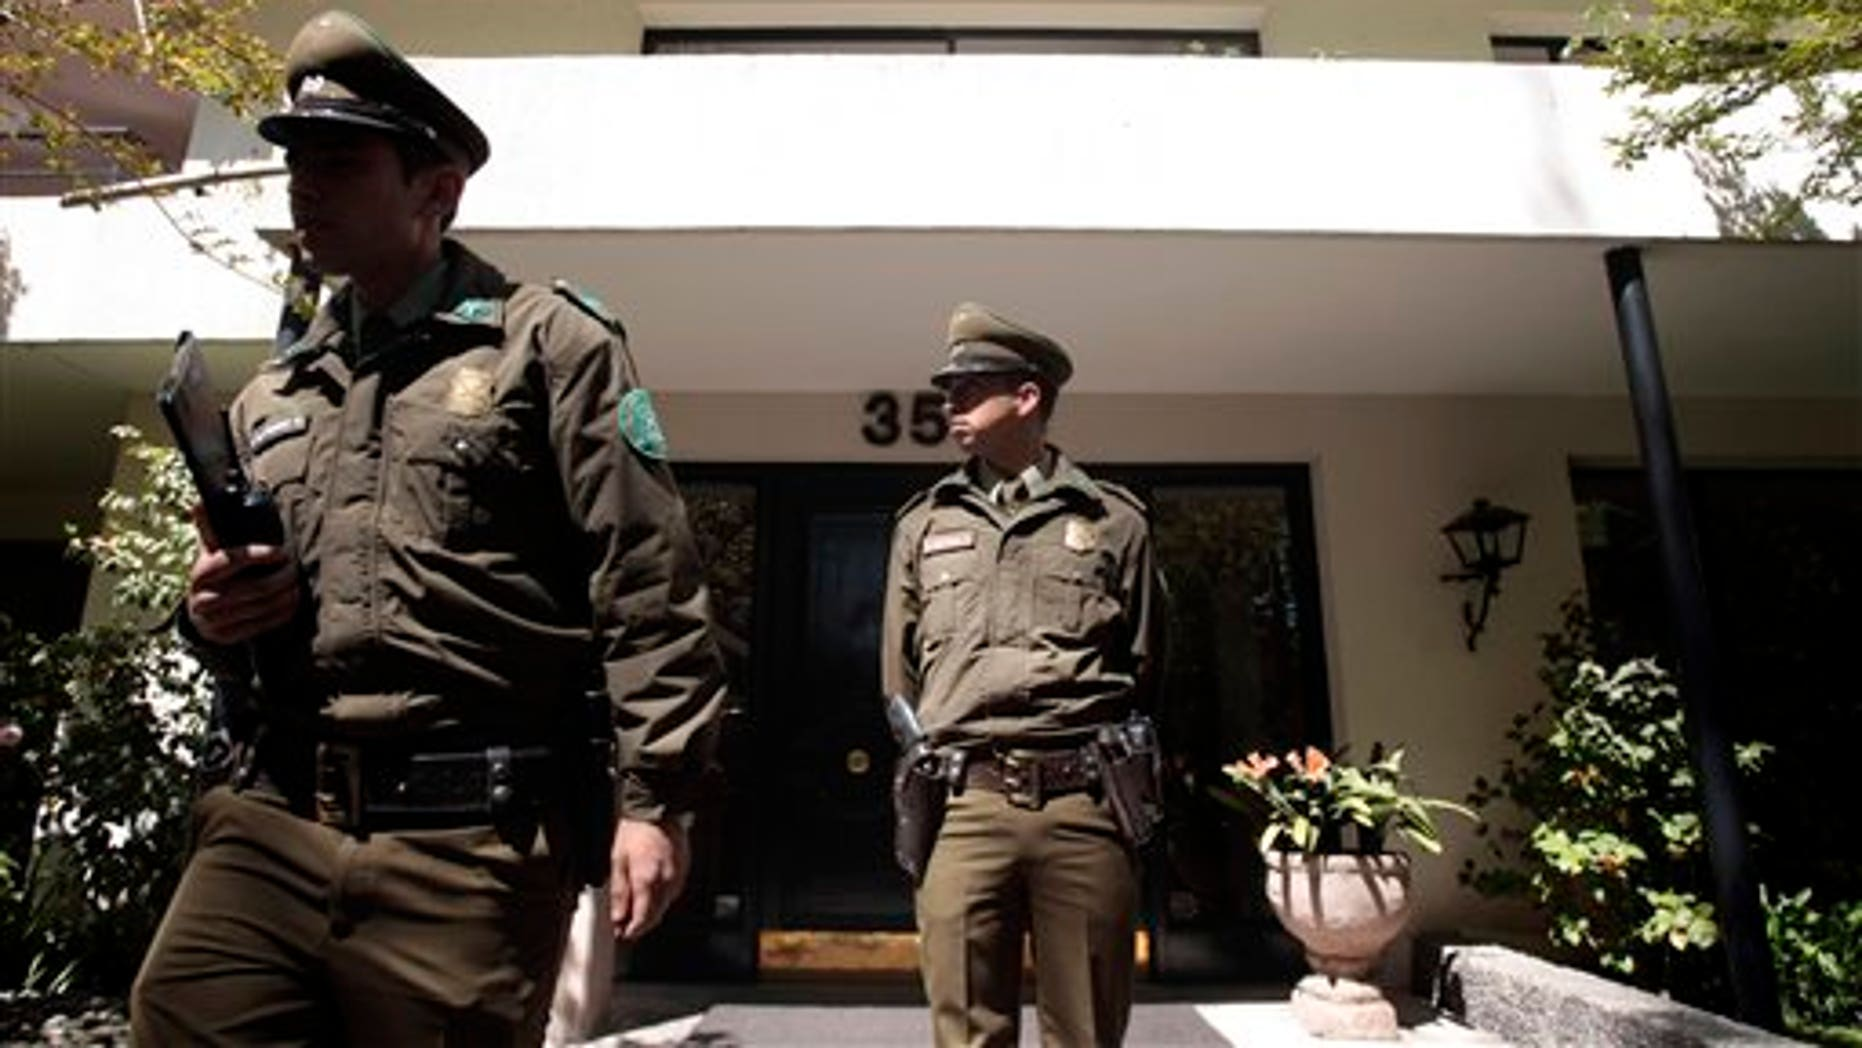 Policemen stand guard at the residence entrance of suicide victim, former Chilean Gen. Odlanier Mena, in Santiago, Chile, Saturday, Sept. 28, 2013. The 87-year-old retired general was serving time for human rights violations but was allowed weekend home visits. He committed suicide at his home, hours before he was to return to his prison cell. Mena was the first director of the National Information Center, the secret police force created by dictator Gen. Augusto Pinochet. (AP Photo/Luis Hidalgo)